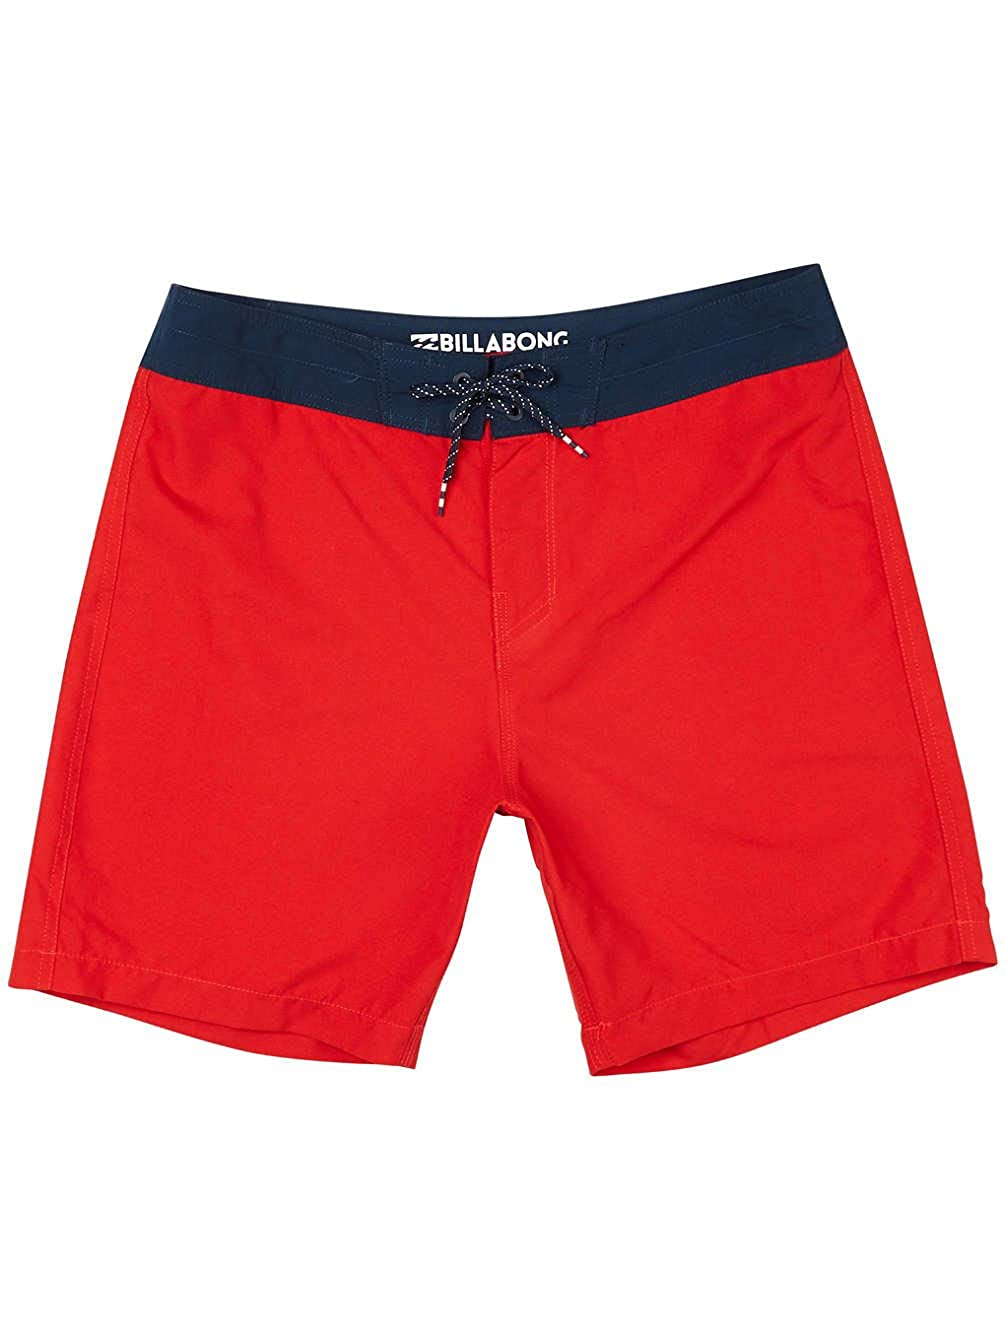 G.S.M. Europe - Billabong All Day OG 17 – Bañador, Hombre, All Day OG 17, Rojo